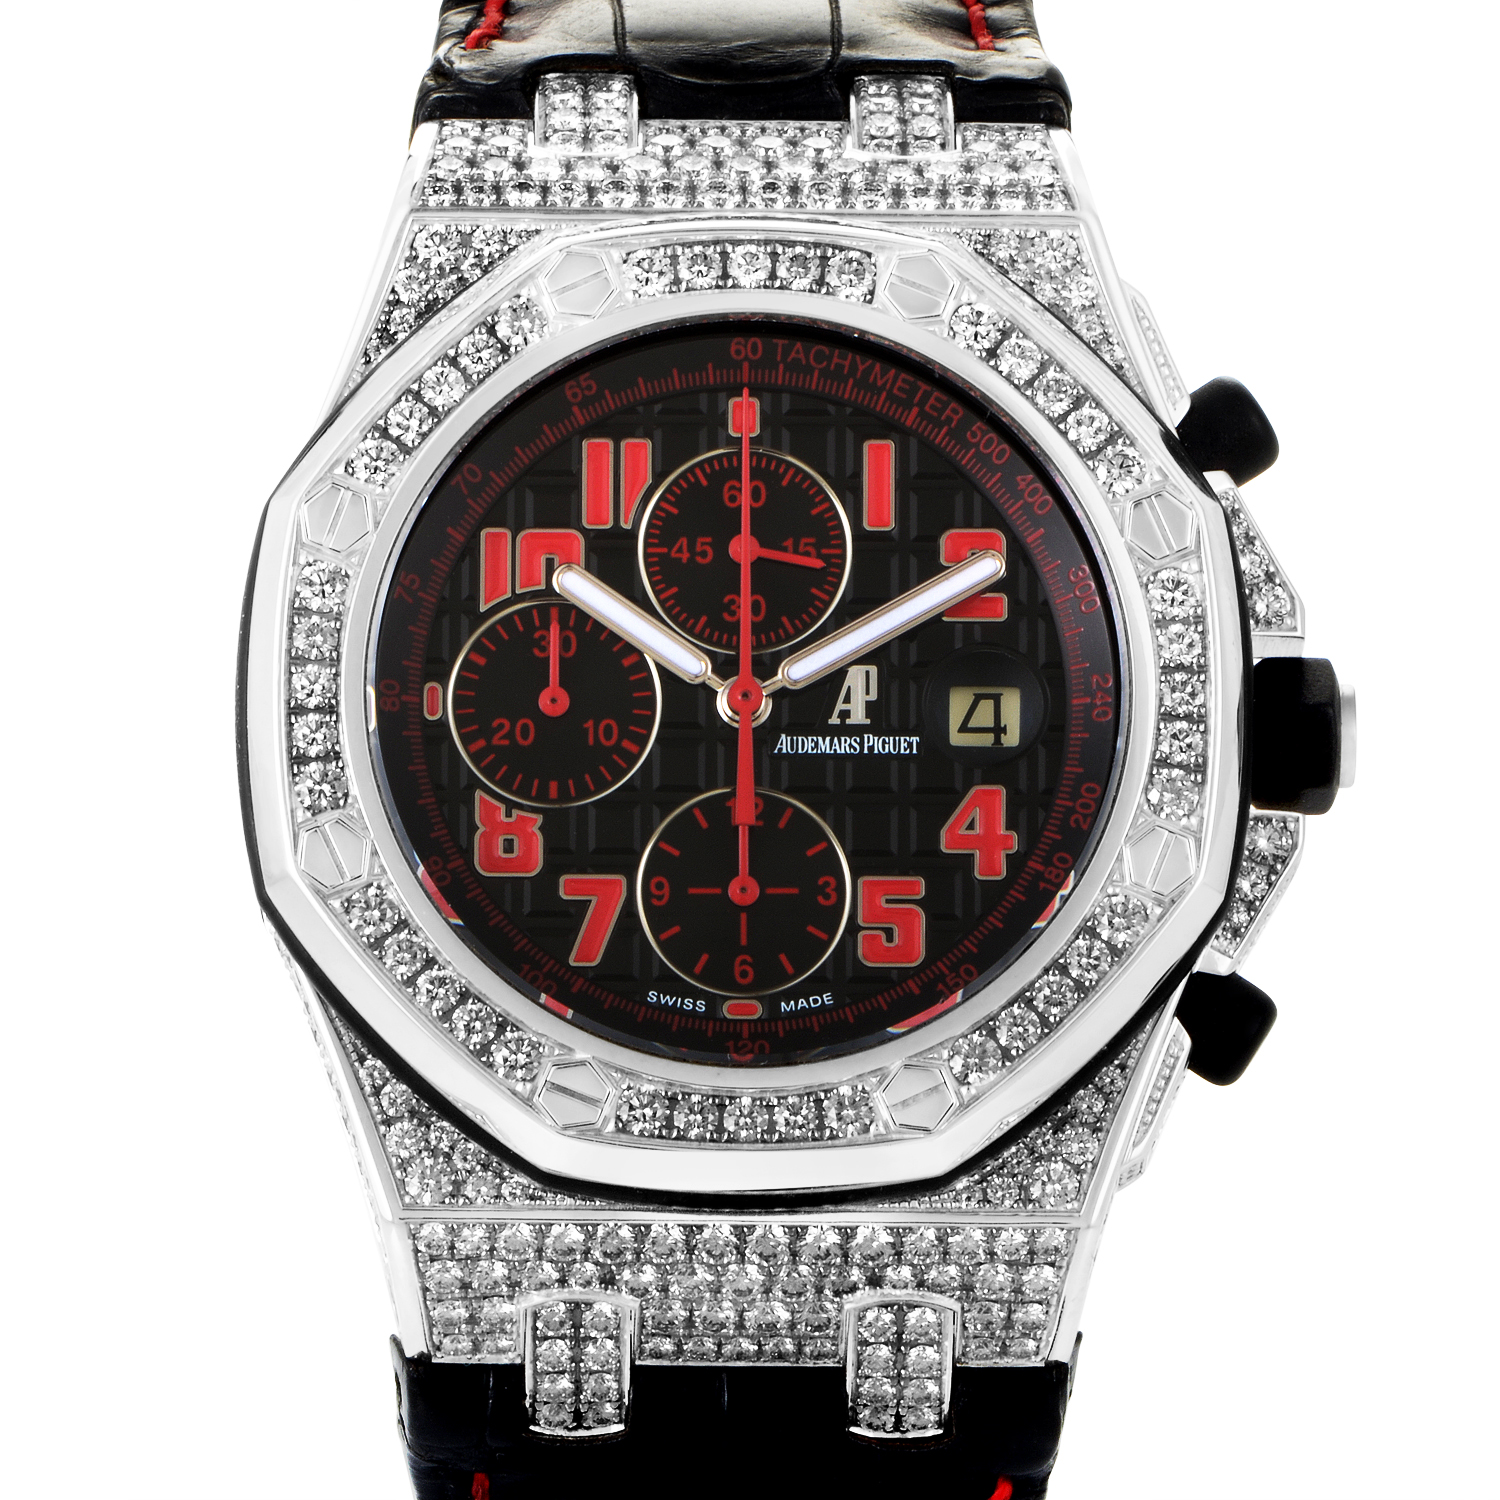 Royal Oak Offshore Las Vegas Strip Watch 26191BC.ZZ.D002CR.01